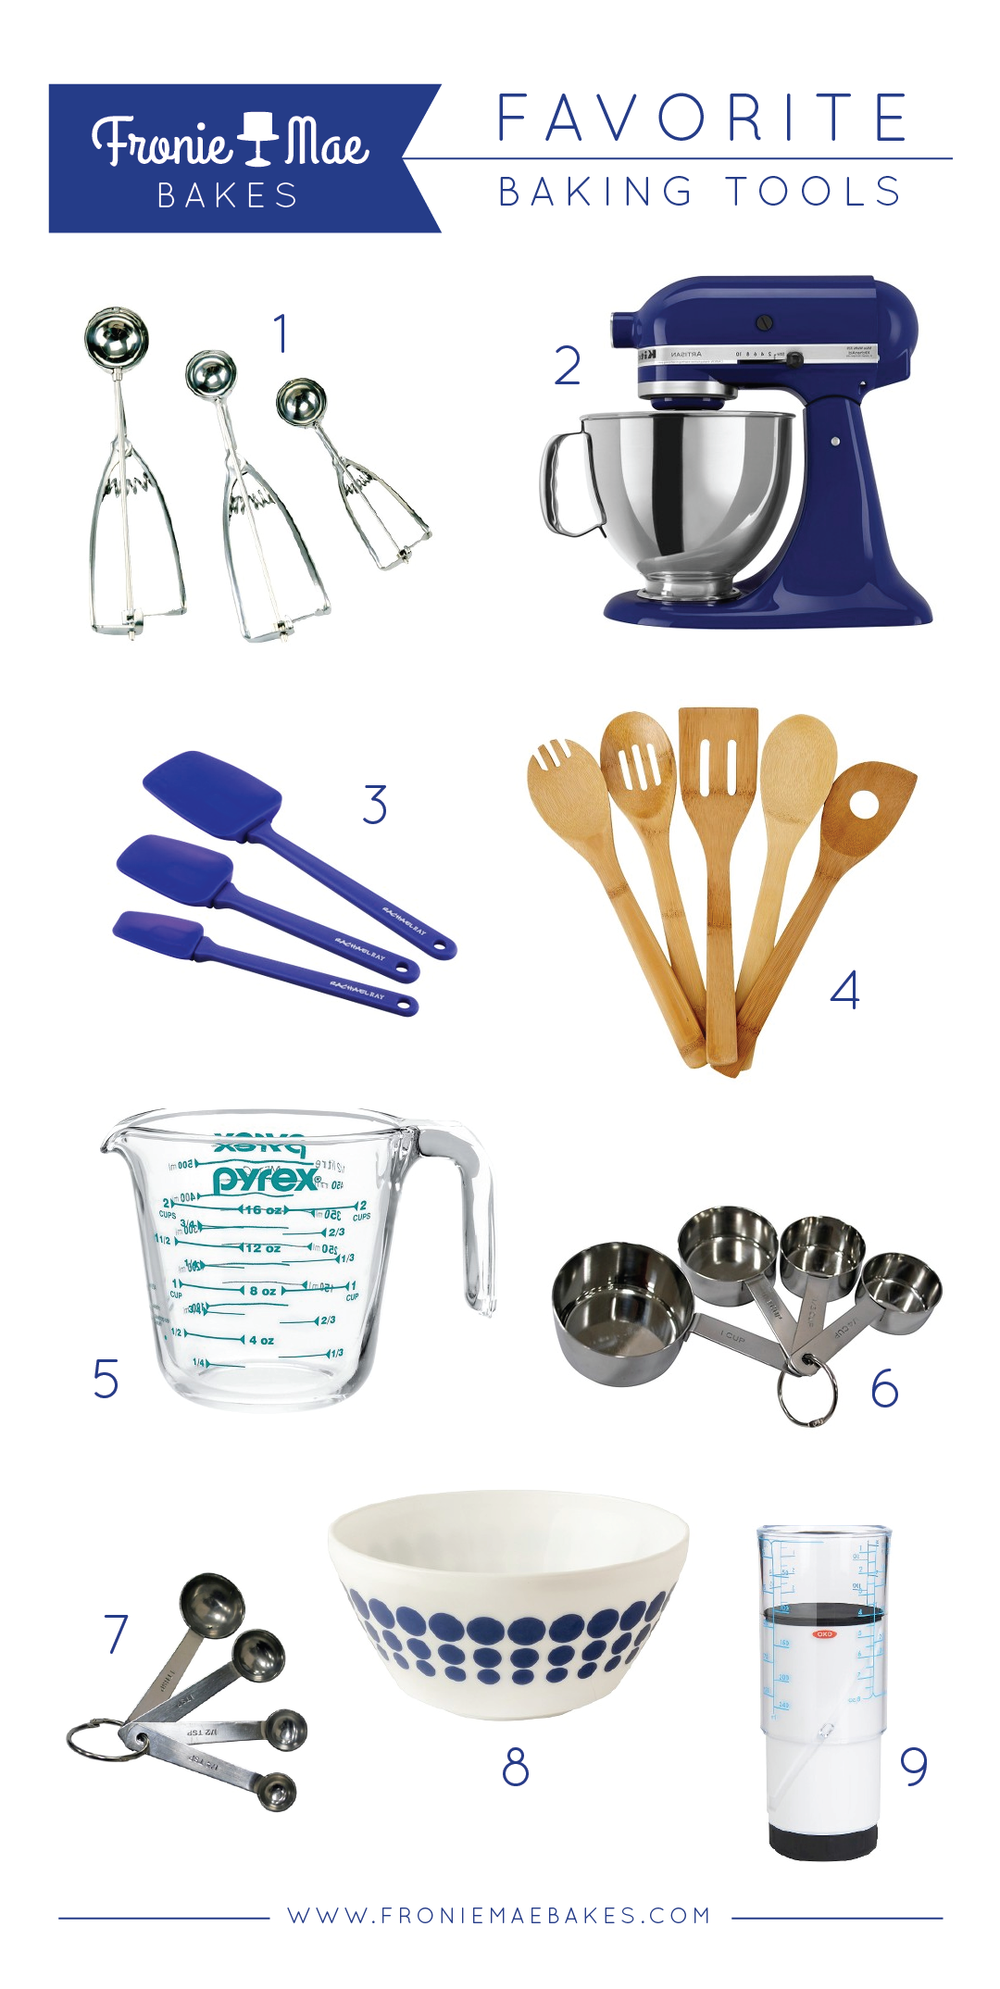 Favorite Must Have Baking Tools by Fronie Mae Bakes